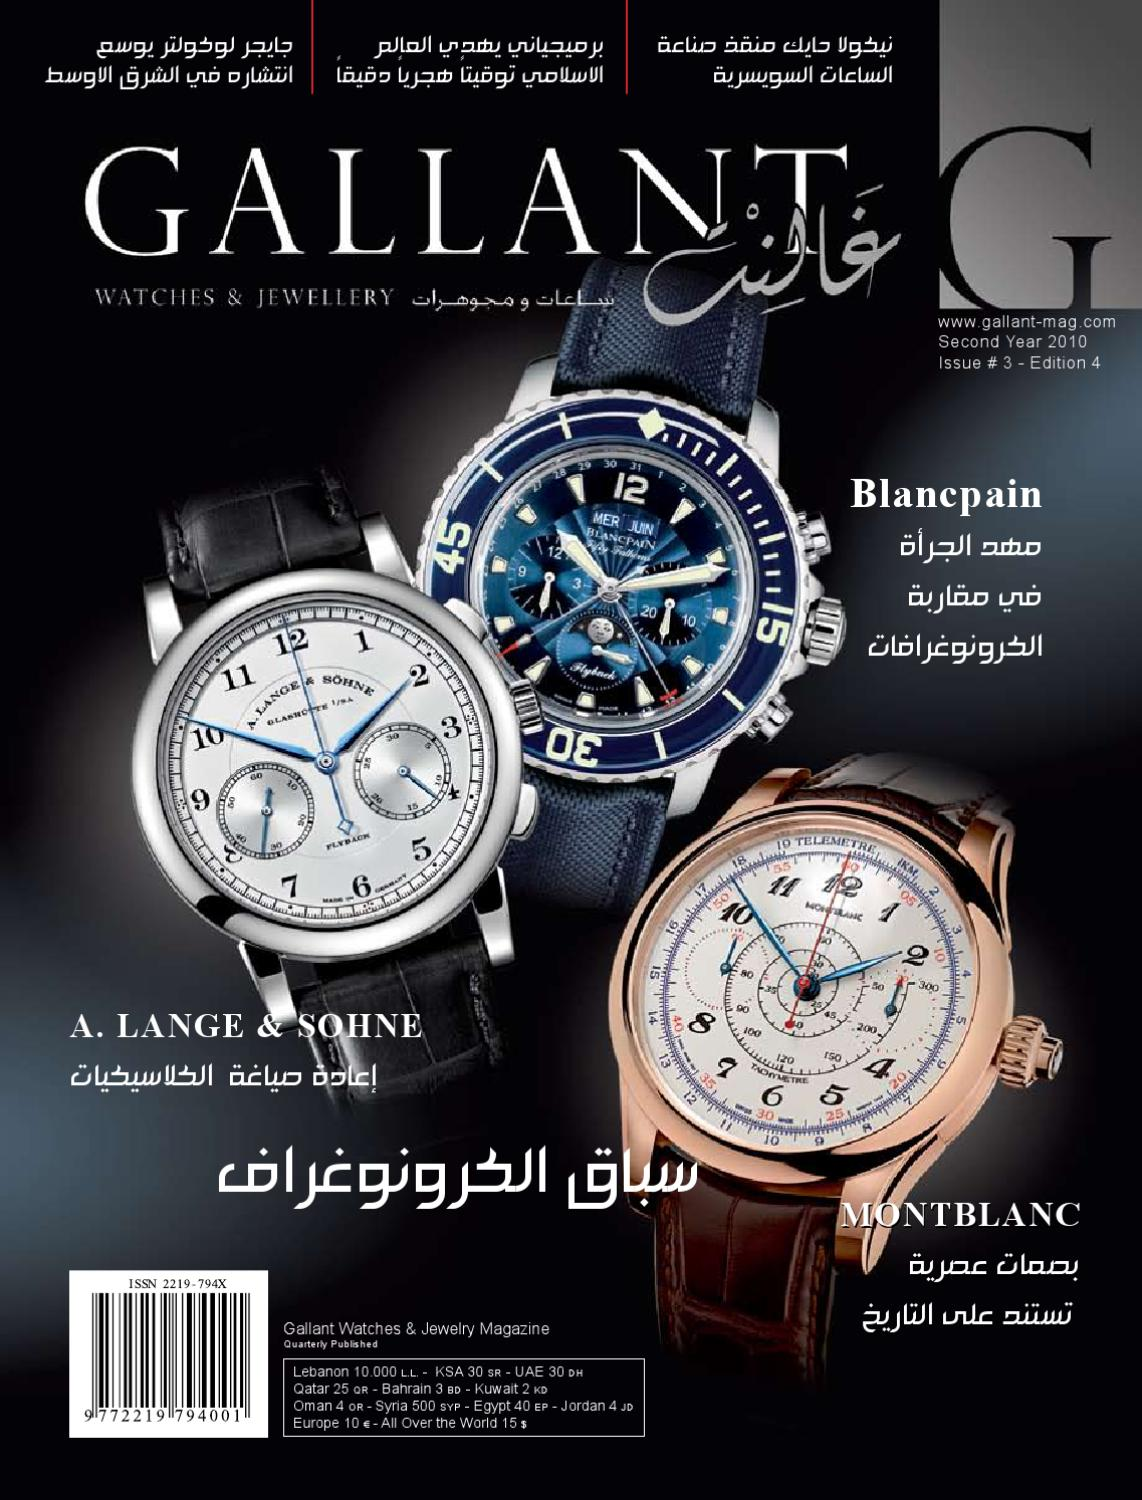 6a4b5784c GALLANT Watches & Jewelry Arabic Magazine غالنت ساعات و مجوهرات by Amer  Tayara - issuu